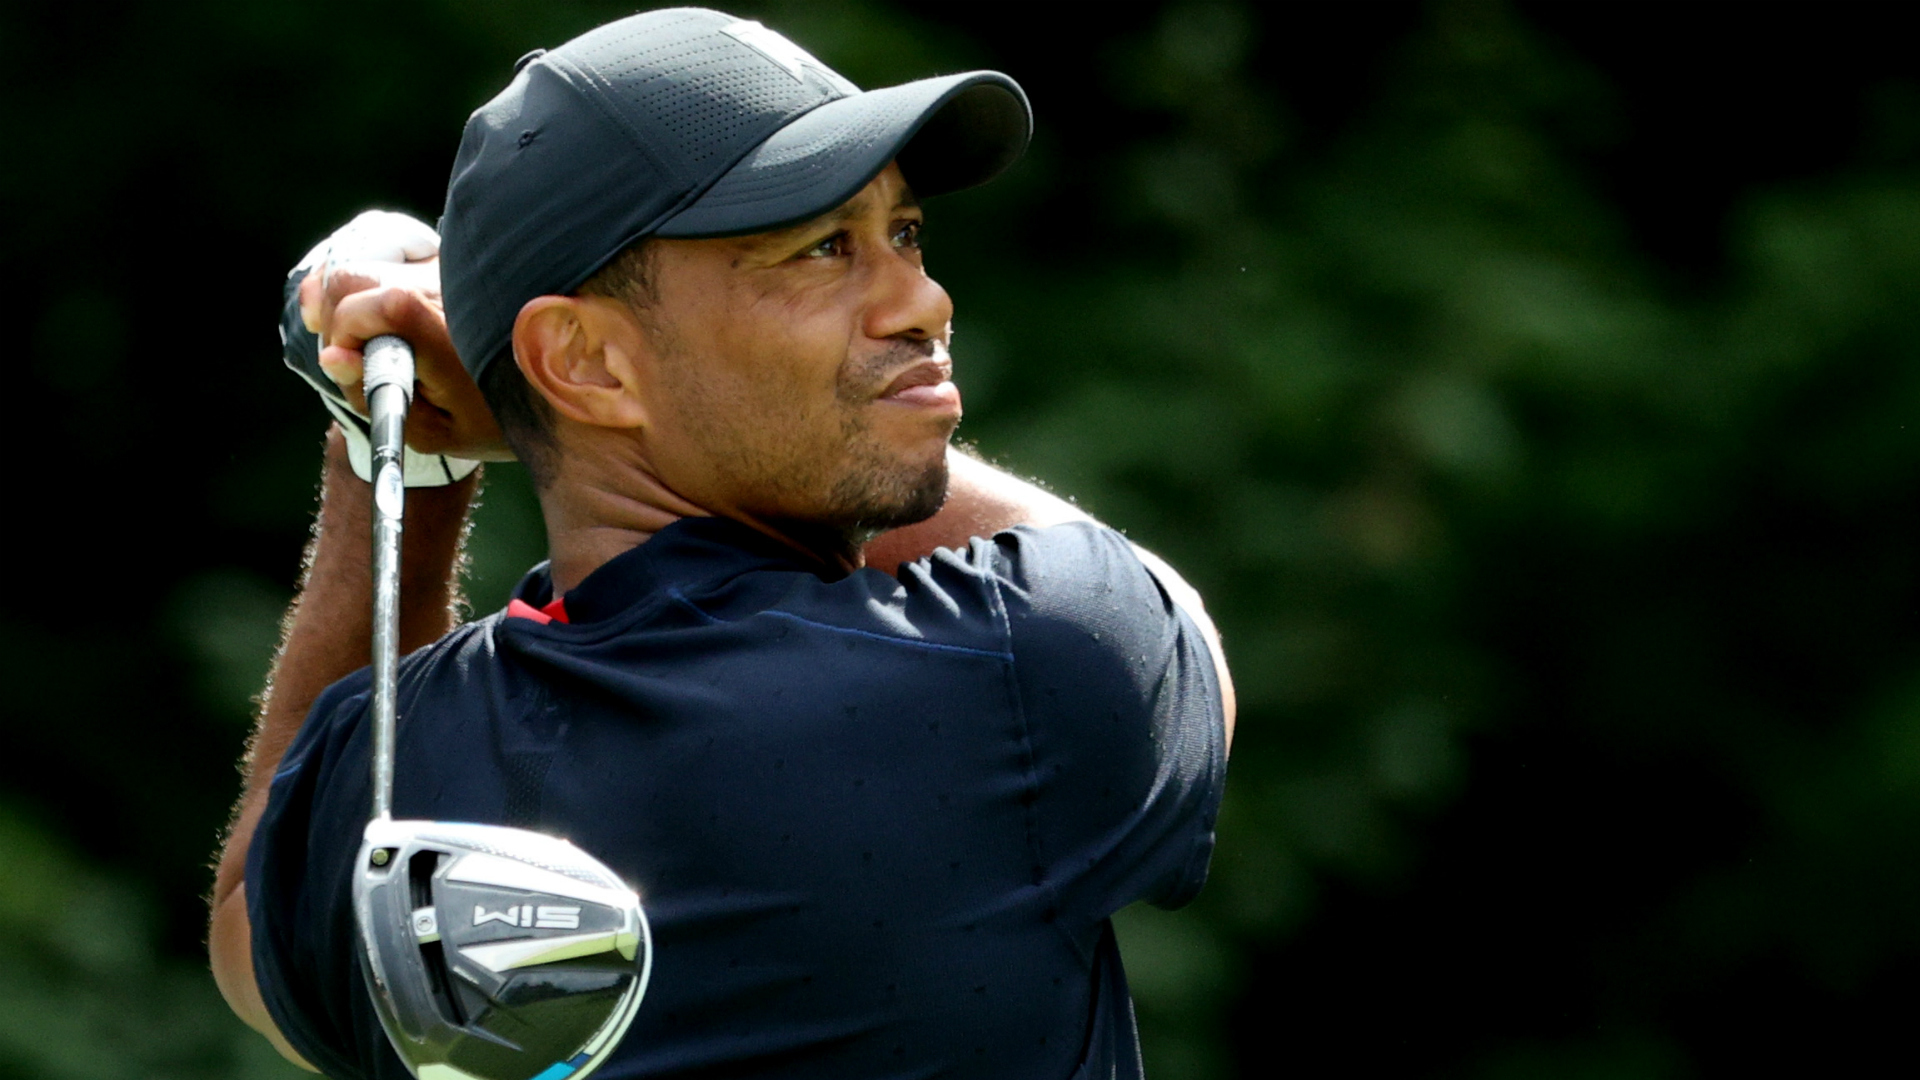 Tiger Woods taken to hospital after vehicle collision